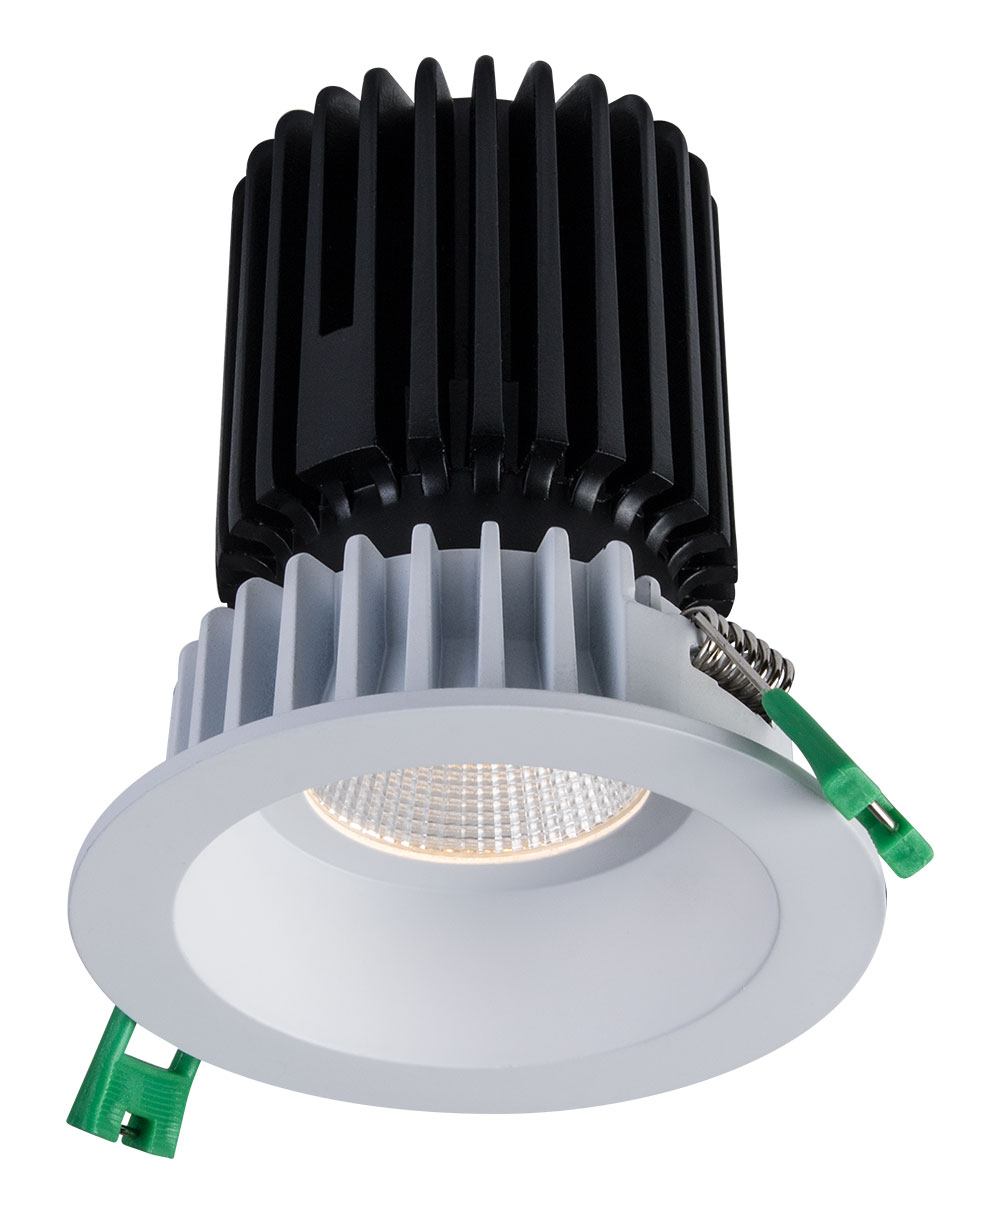 Sigma 2 Round Regressed LED Fixture